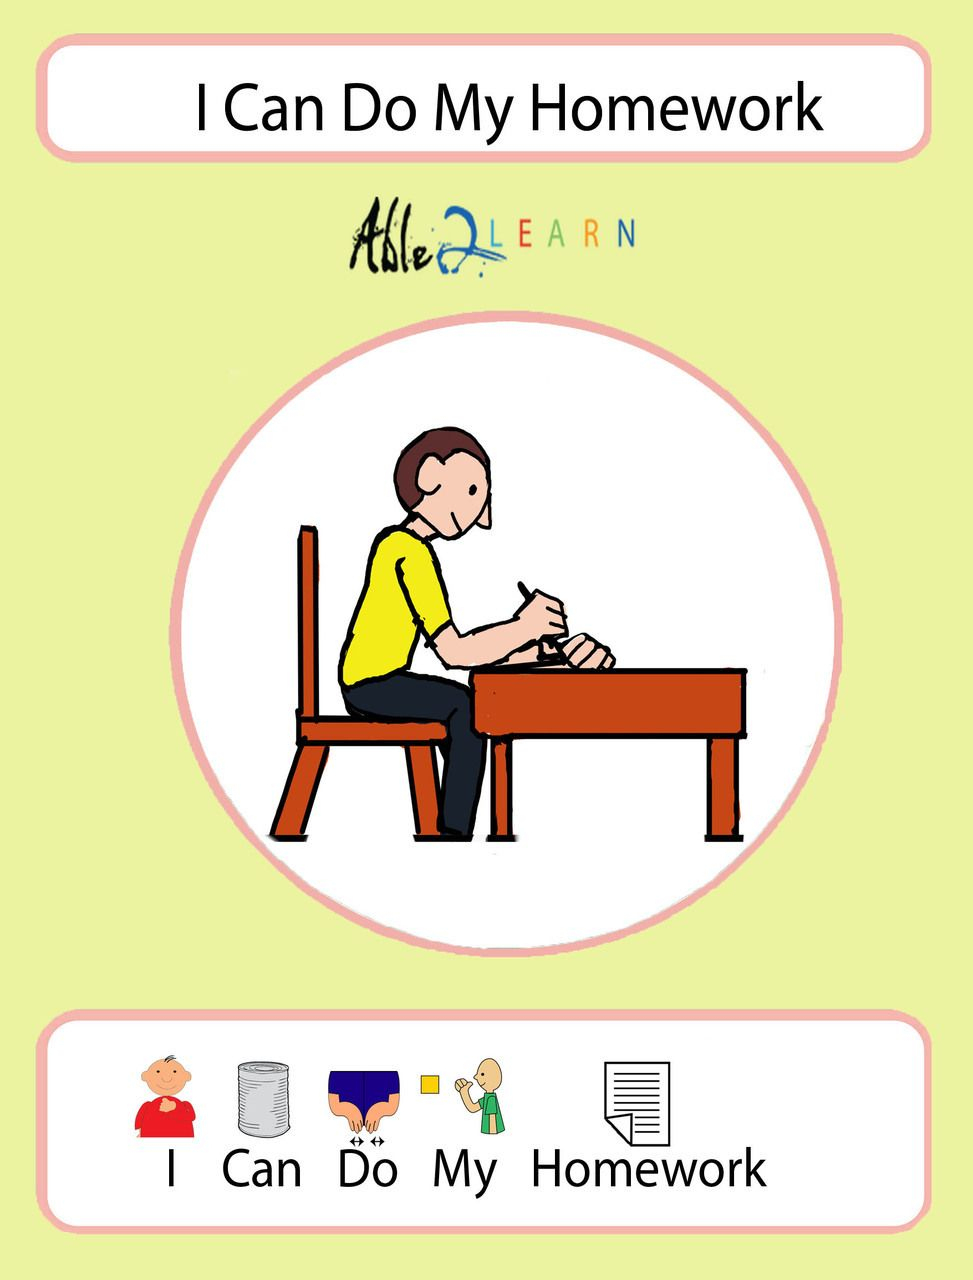 I Can Do My Homework Social Story: Pages 10 | Icons | Social Stories | Free Printable Social Stories Worksheets